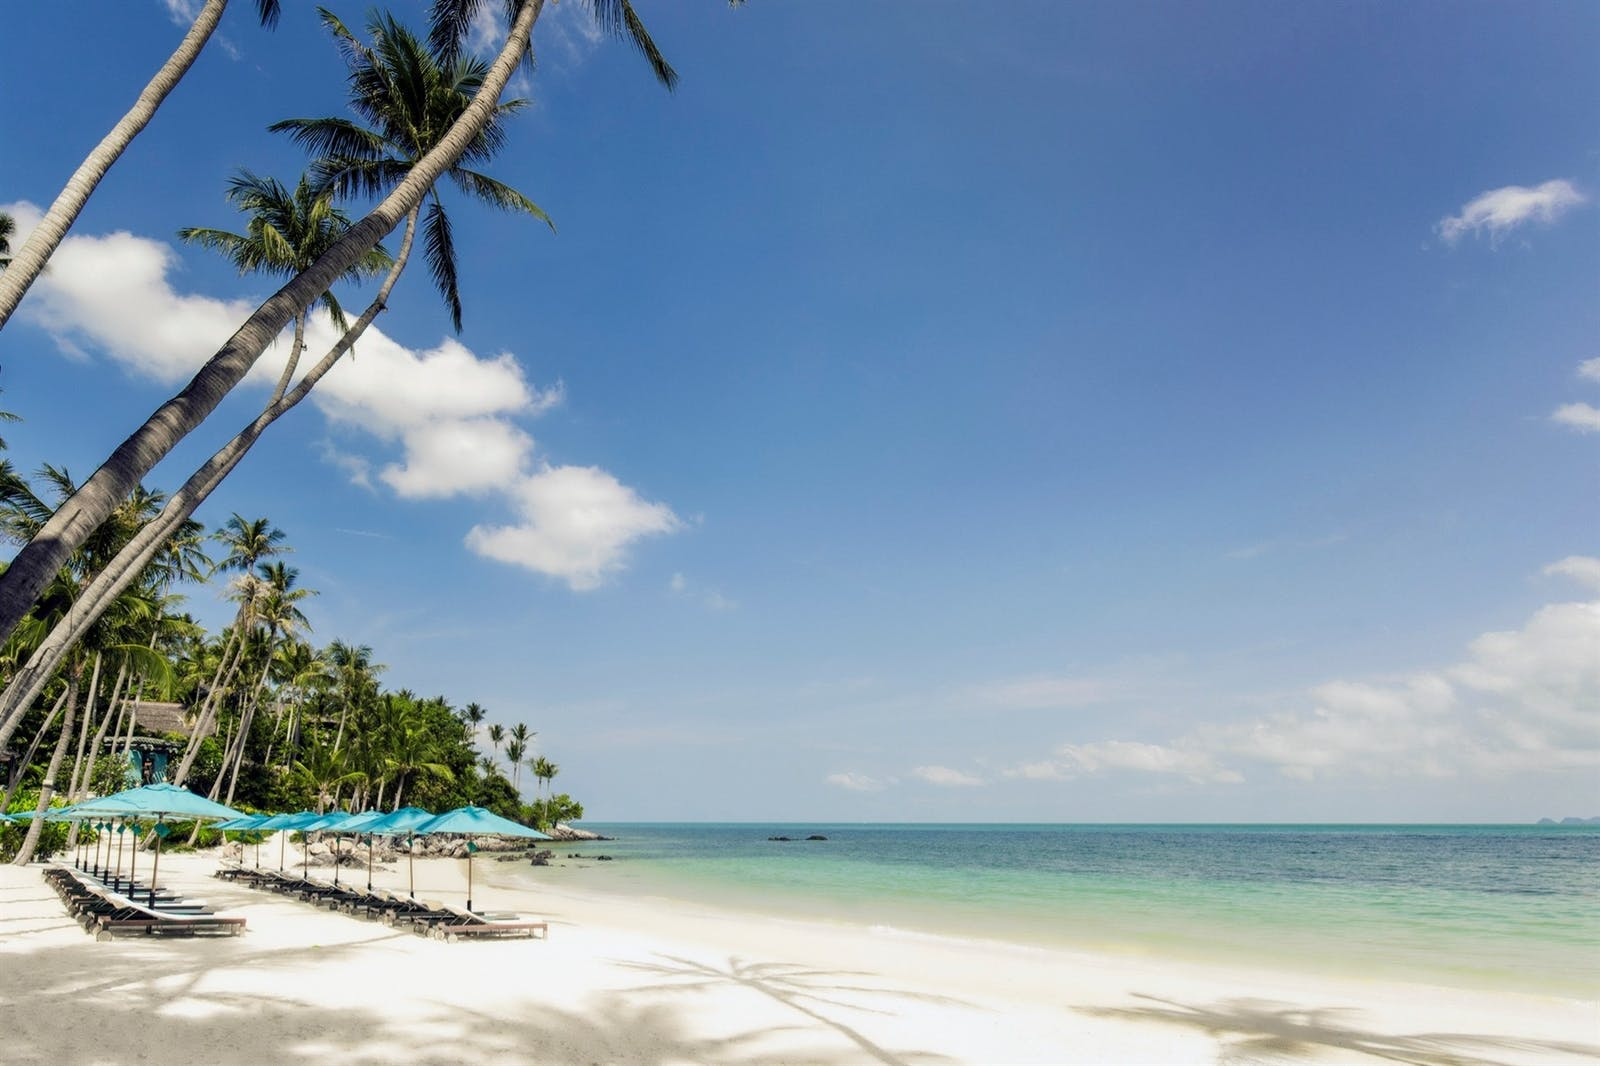 the beach at four seasons resort koh samui thailand